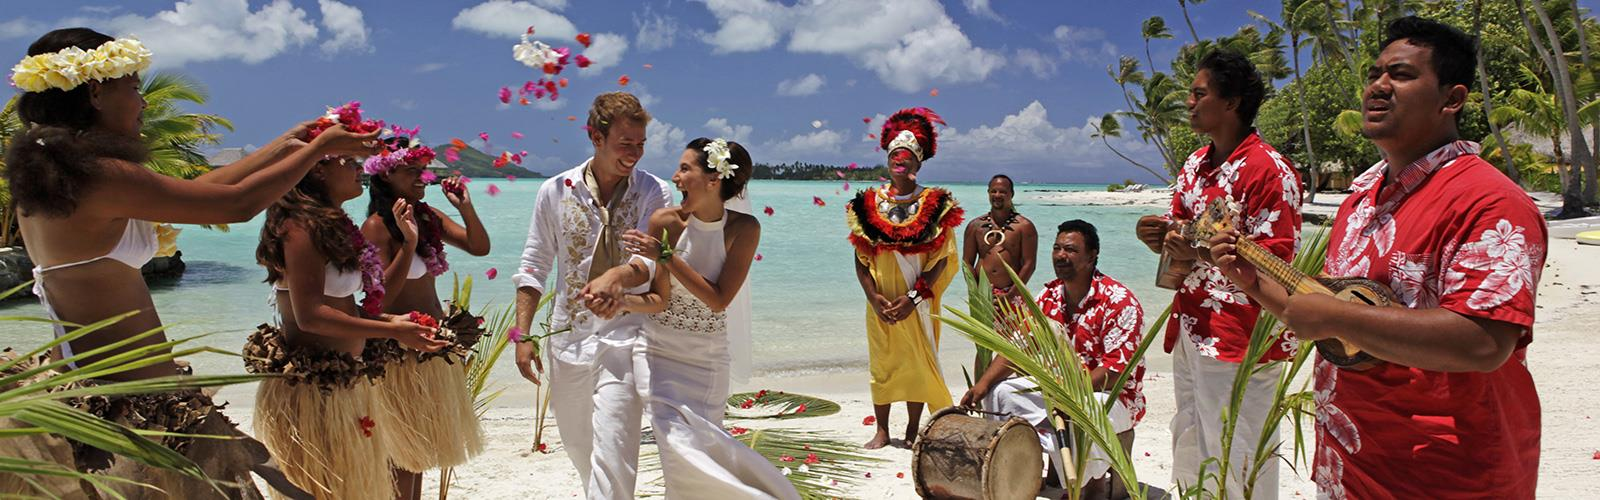 Bora bora pearl beach resort spa legal weddings reservations junglespirit Choice Image